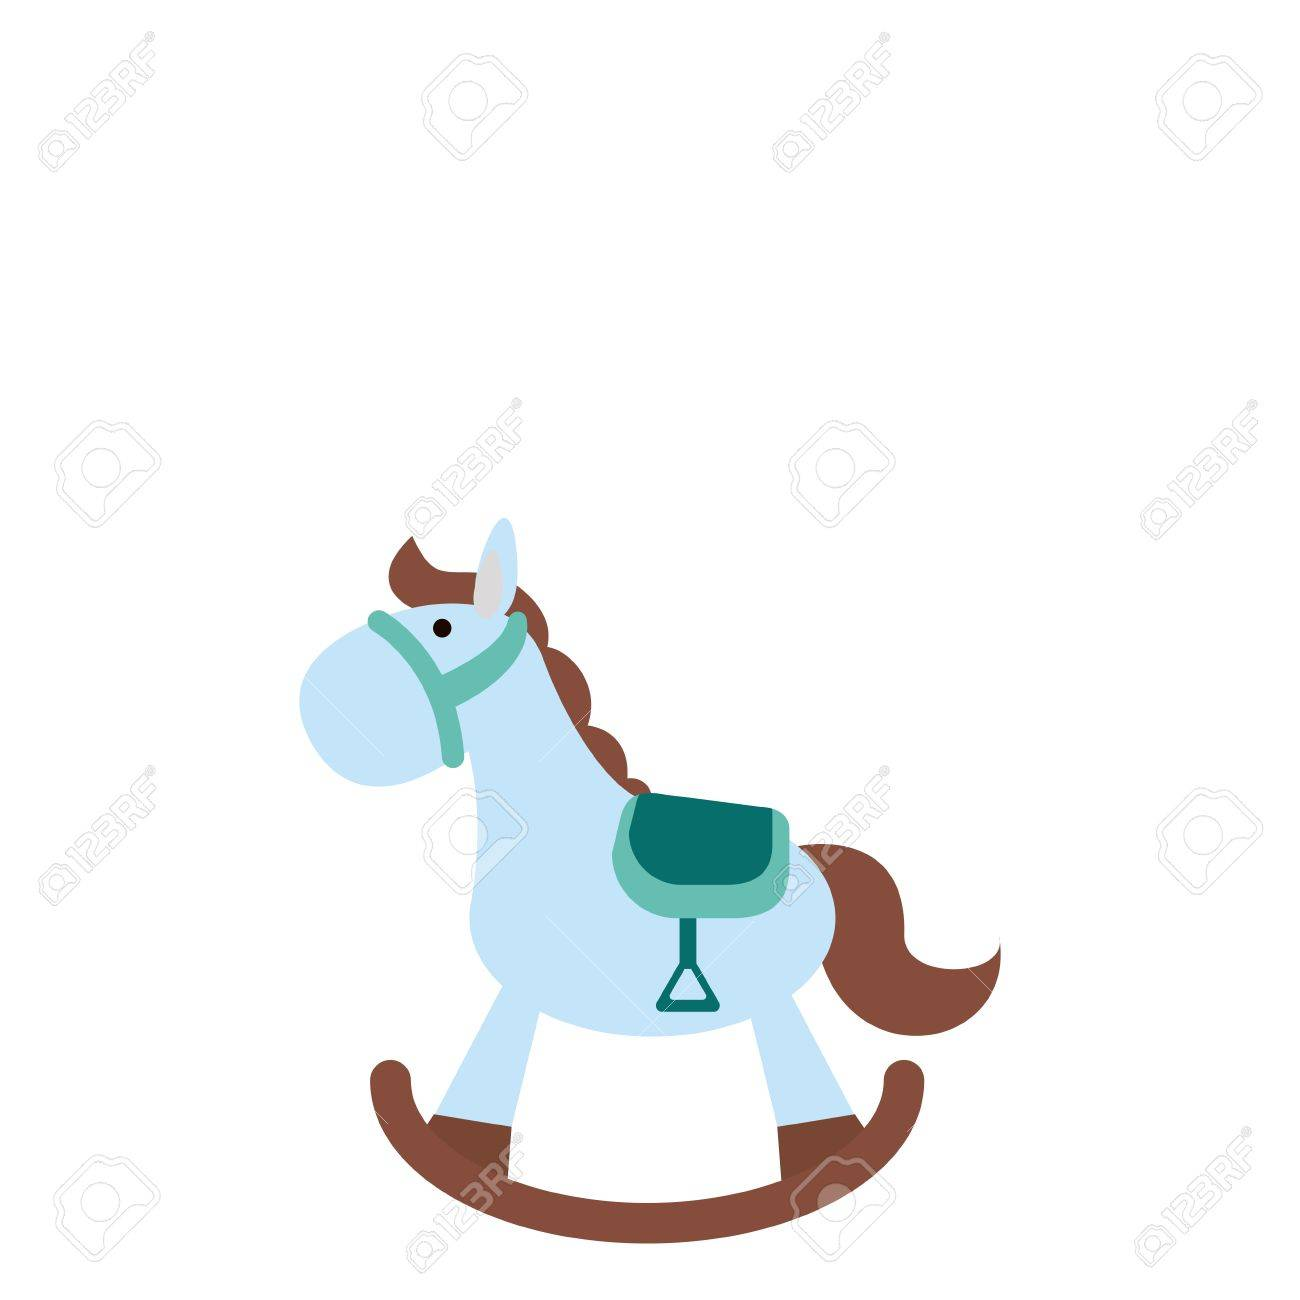 Wood Rocking Horse Baby Or Shower Related Icon Image Vector Royalty Free Cliparts Vectors And Stock Illustration Image 79386721